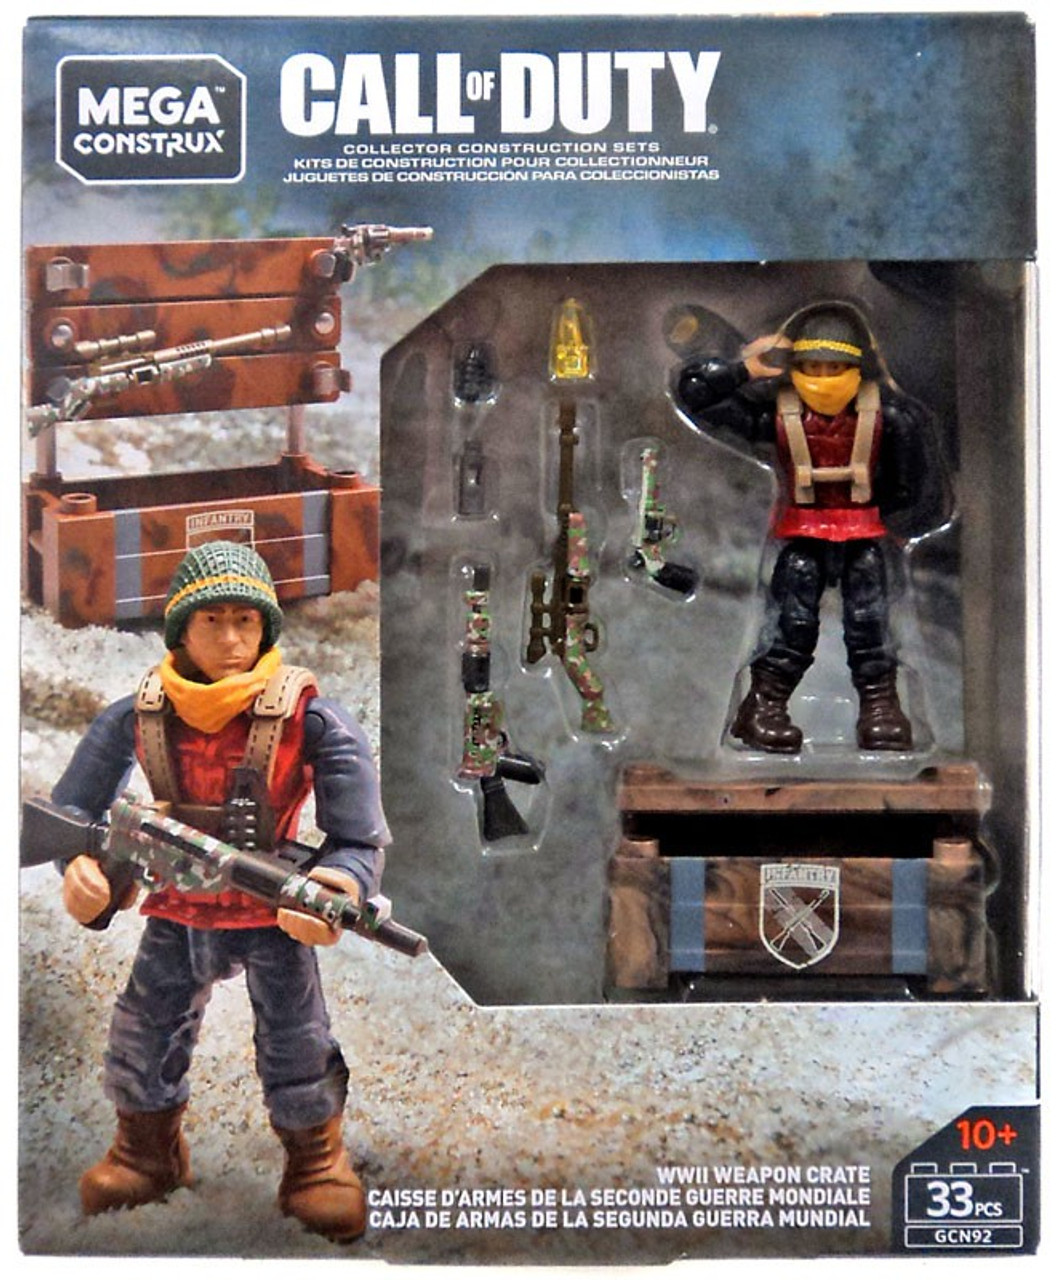 WWII Weapon Crate NEW Mega Construx Call Of Duty Lot of 2 Assault Weapon Crate